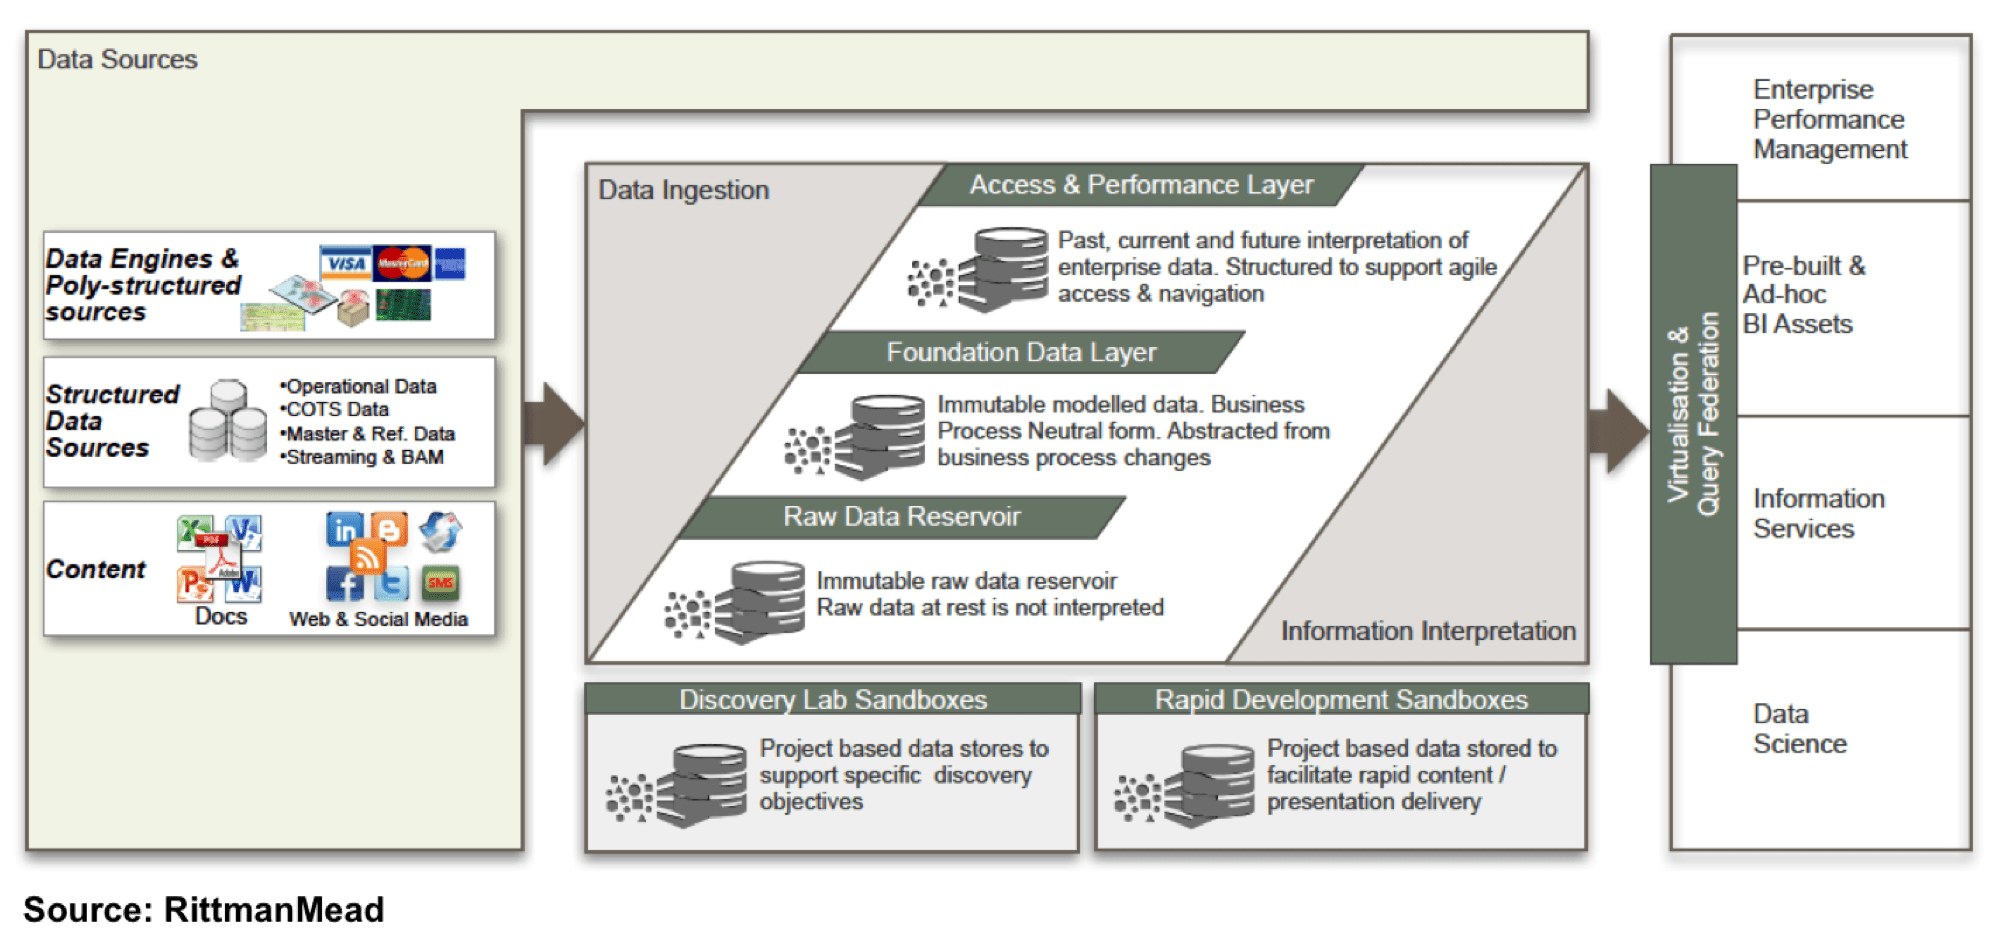 Trying to understand the Oracle Reference Architecture for